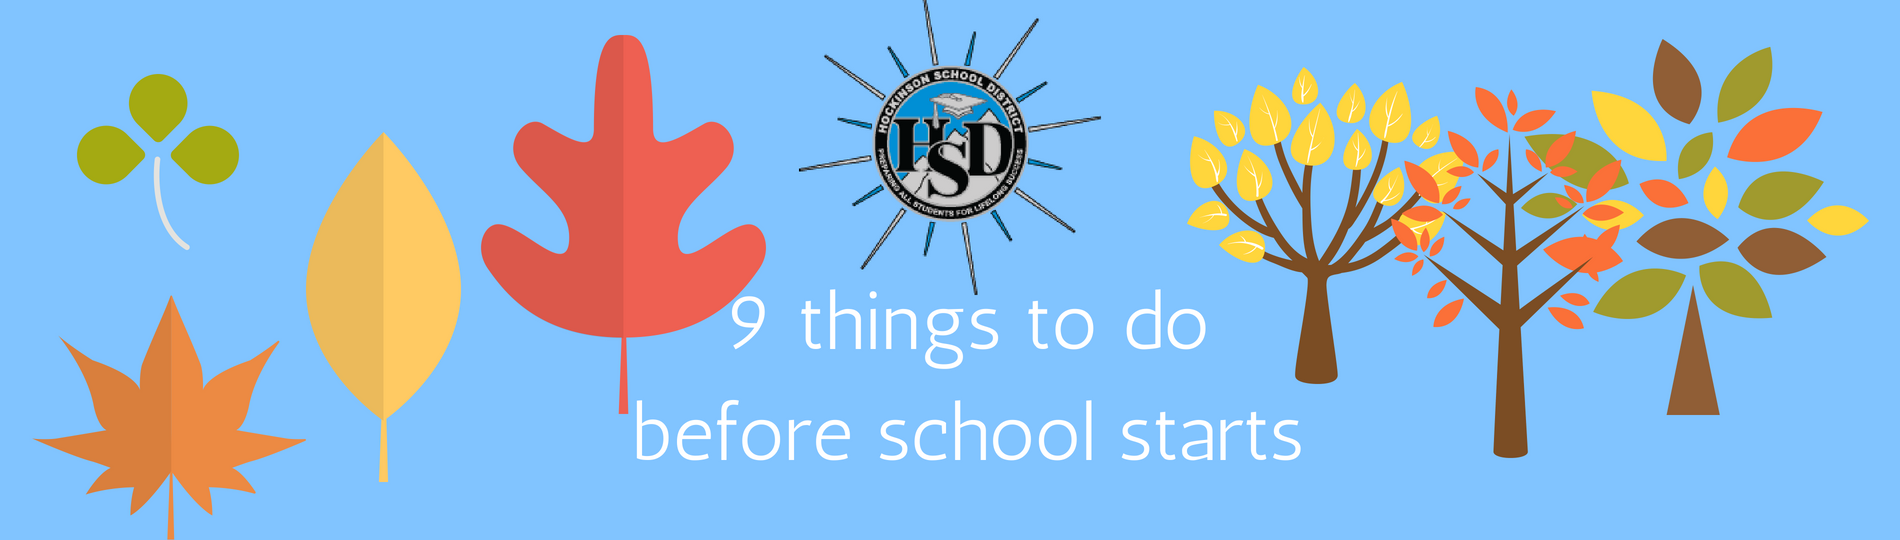 9 things to do before school starts